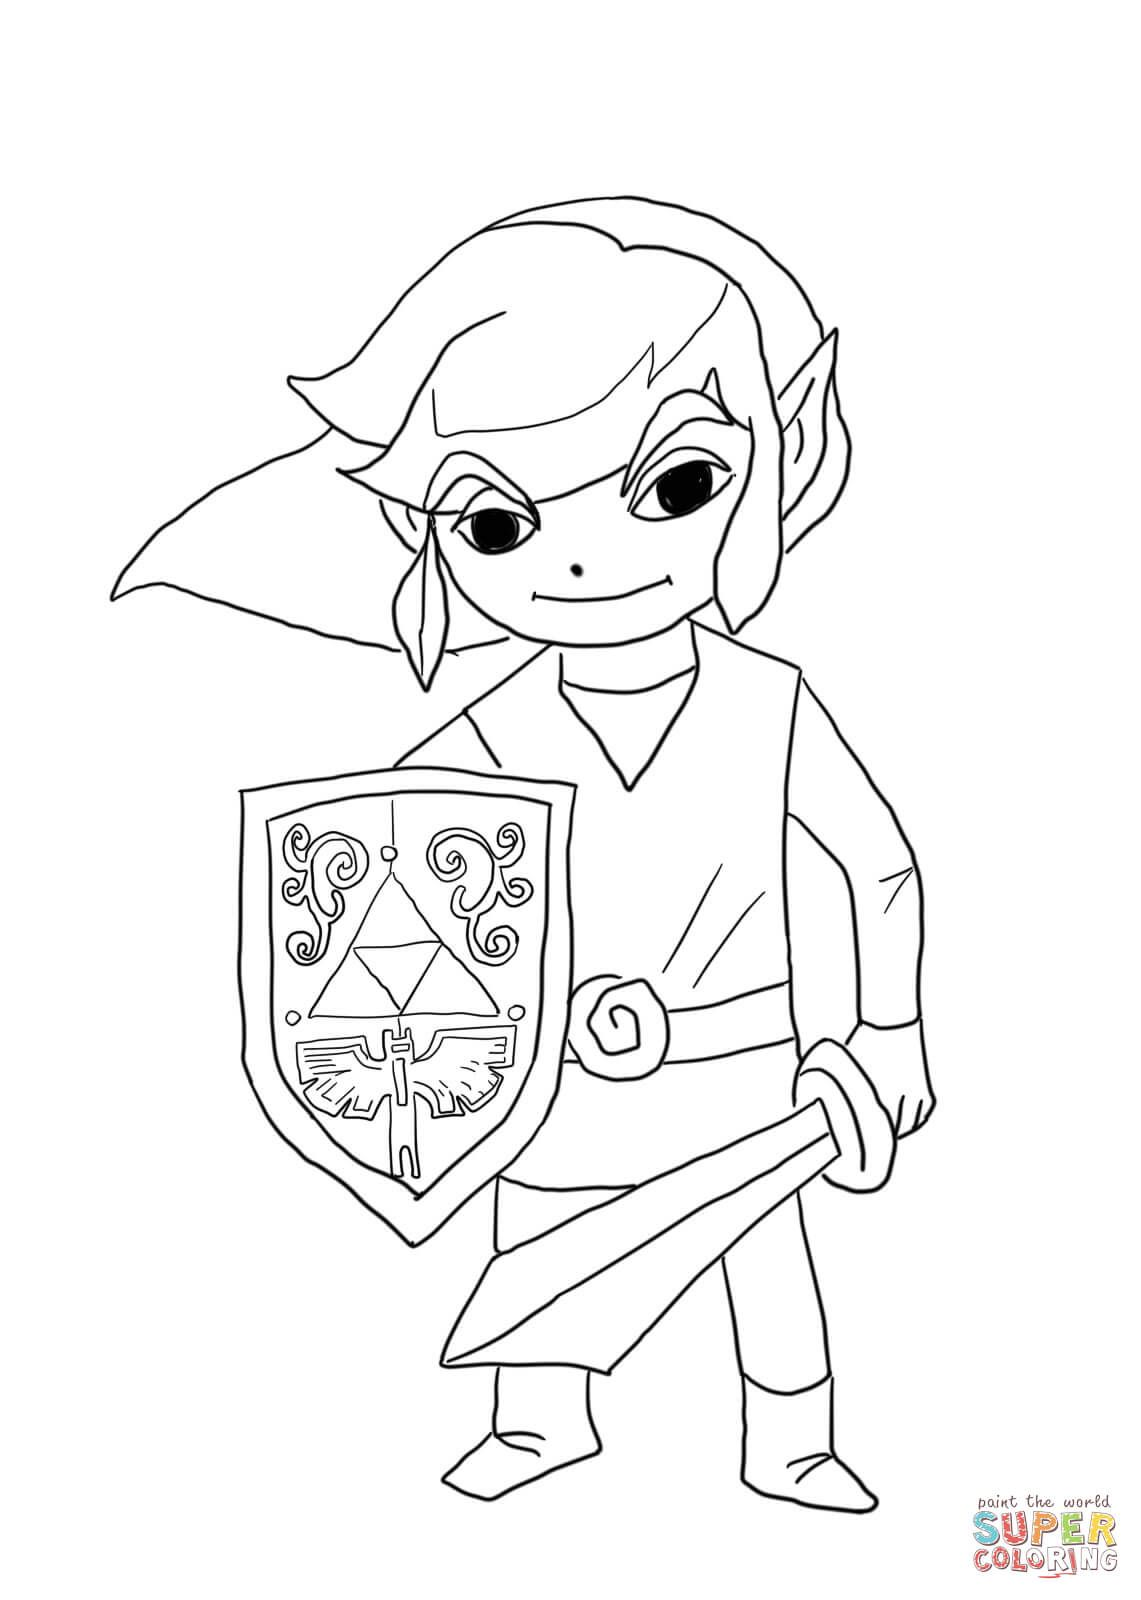 Toon Link from Legend of Zelda Wind Waker coloring page | Free ...